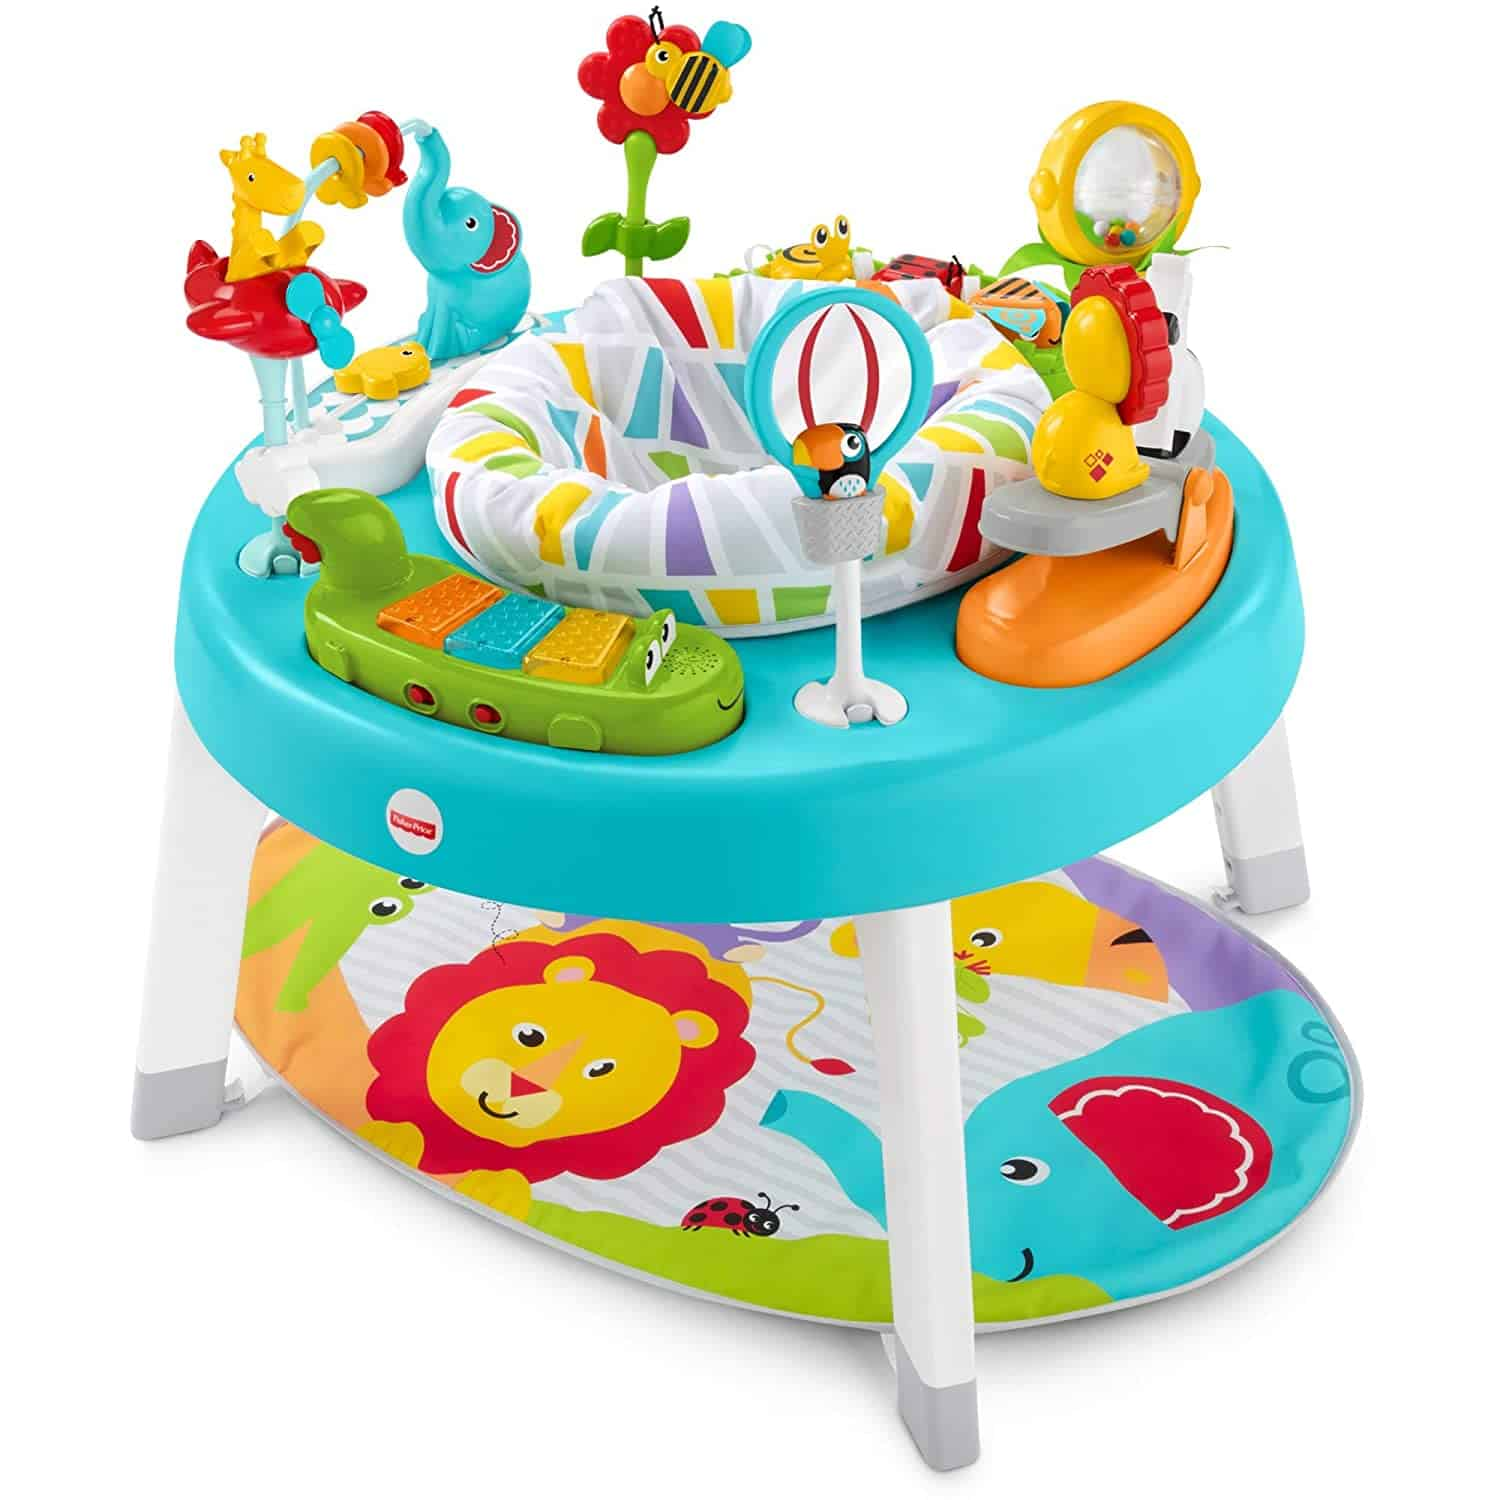 Best Baby Toys for 6 Month Olds